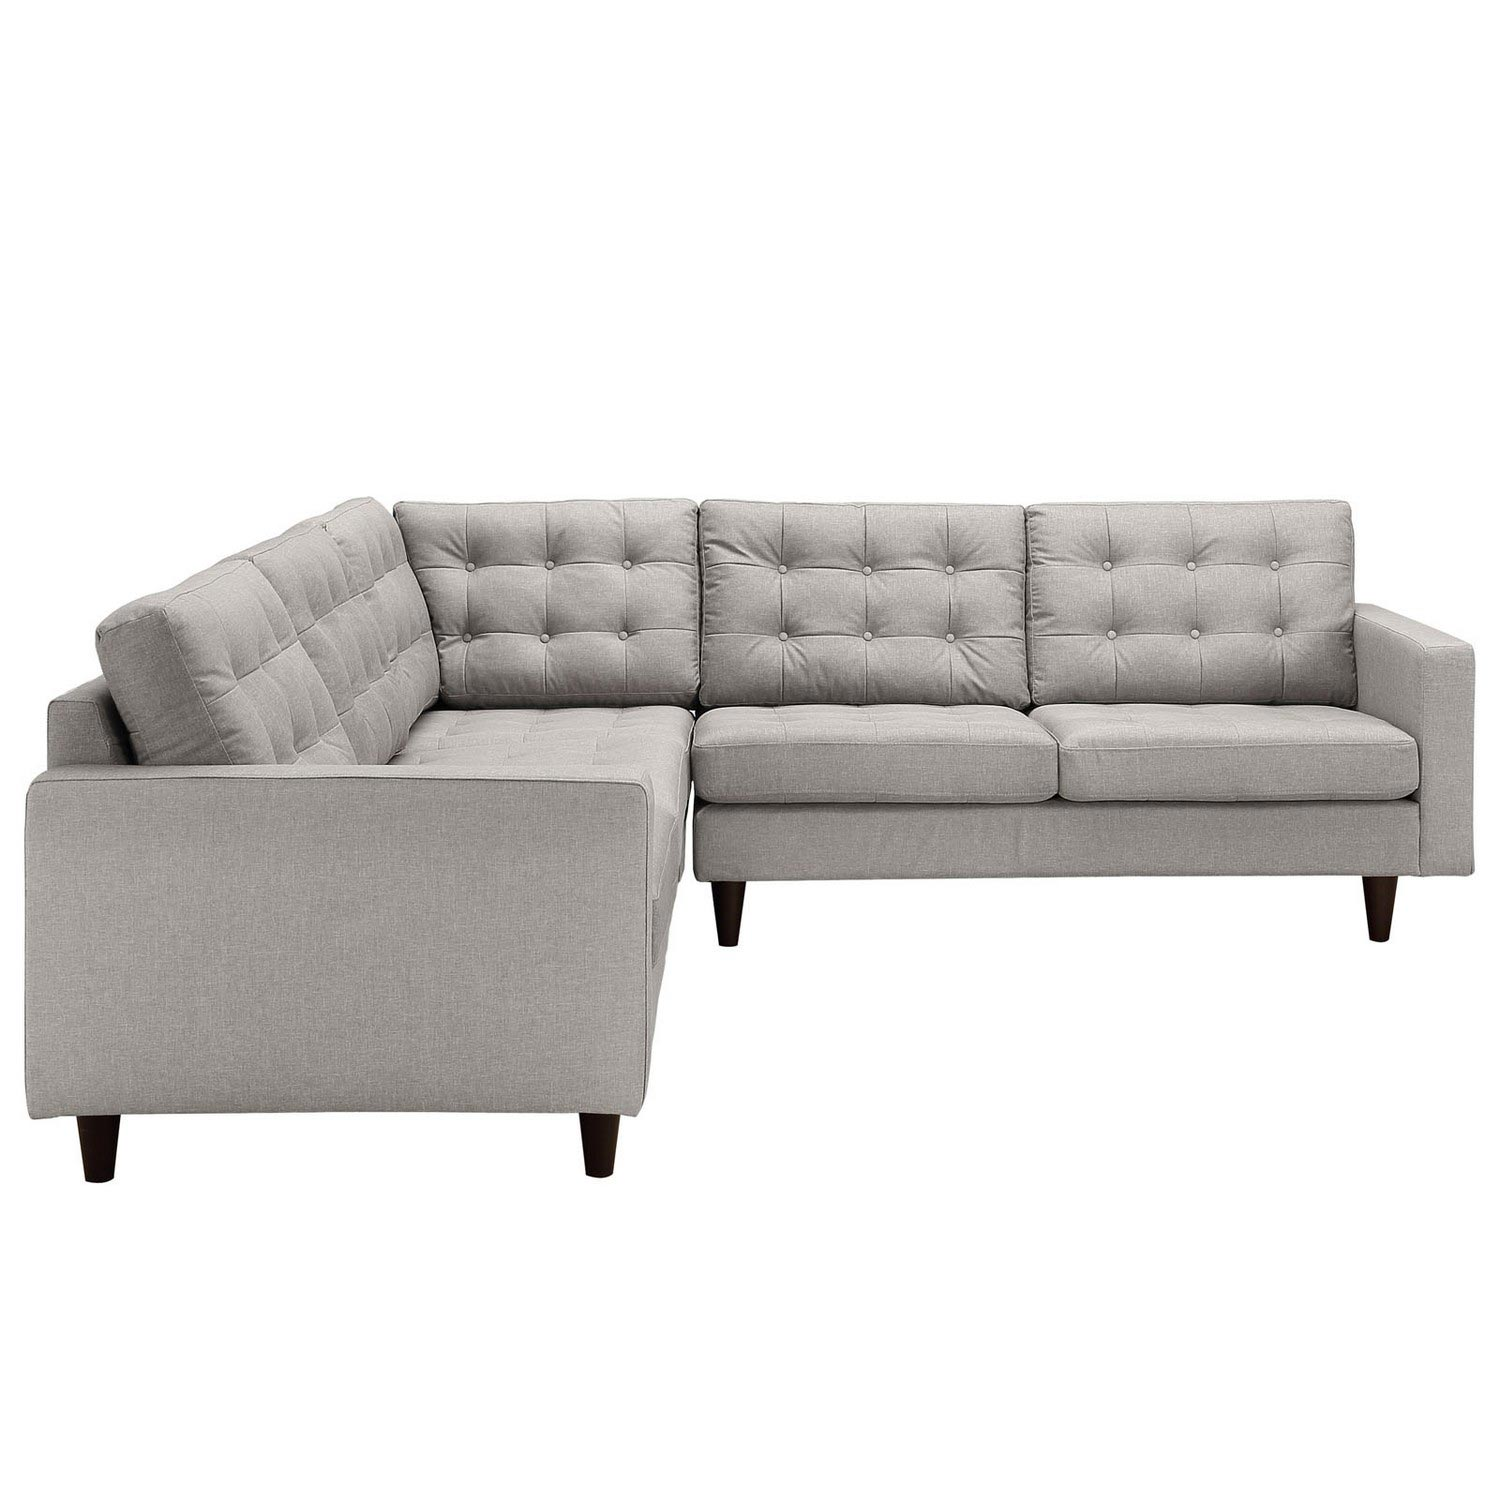 Sectional Couch Light Gray: Modway Empress 3 Piece Fabric Sectional Sofa Set